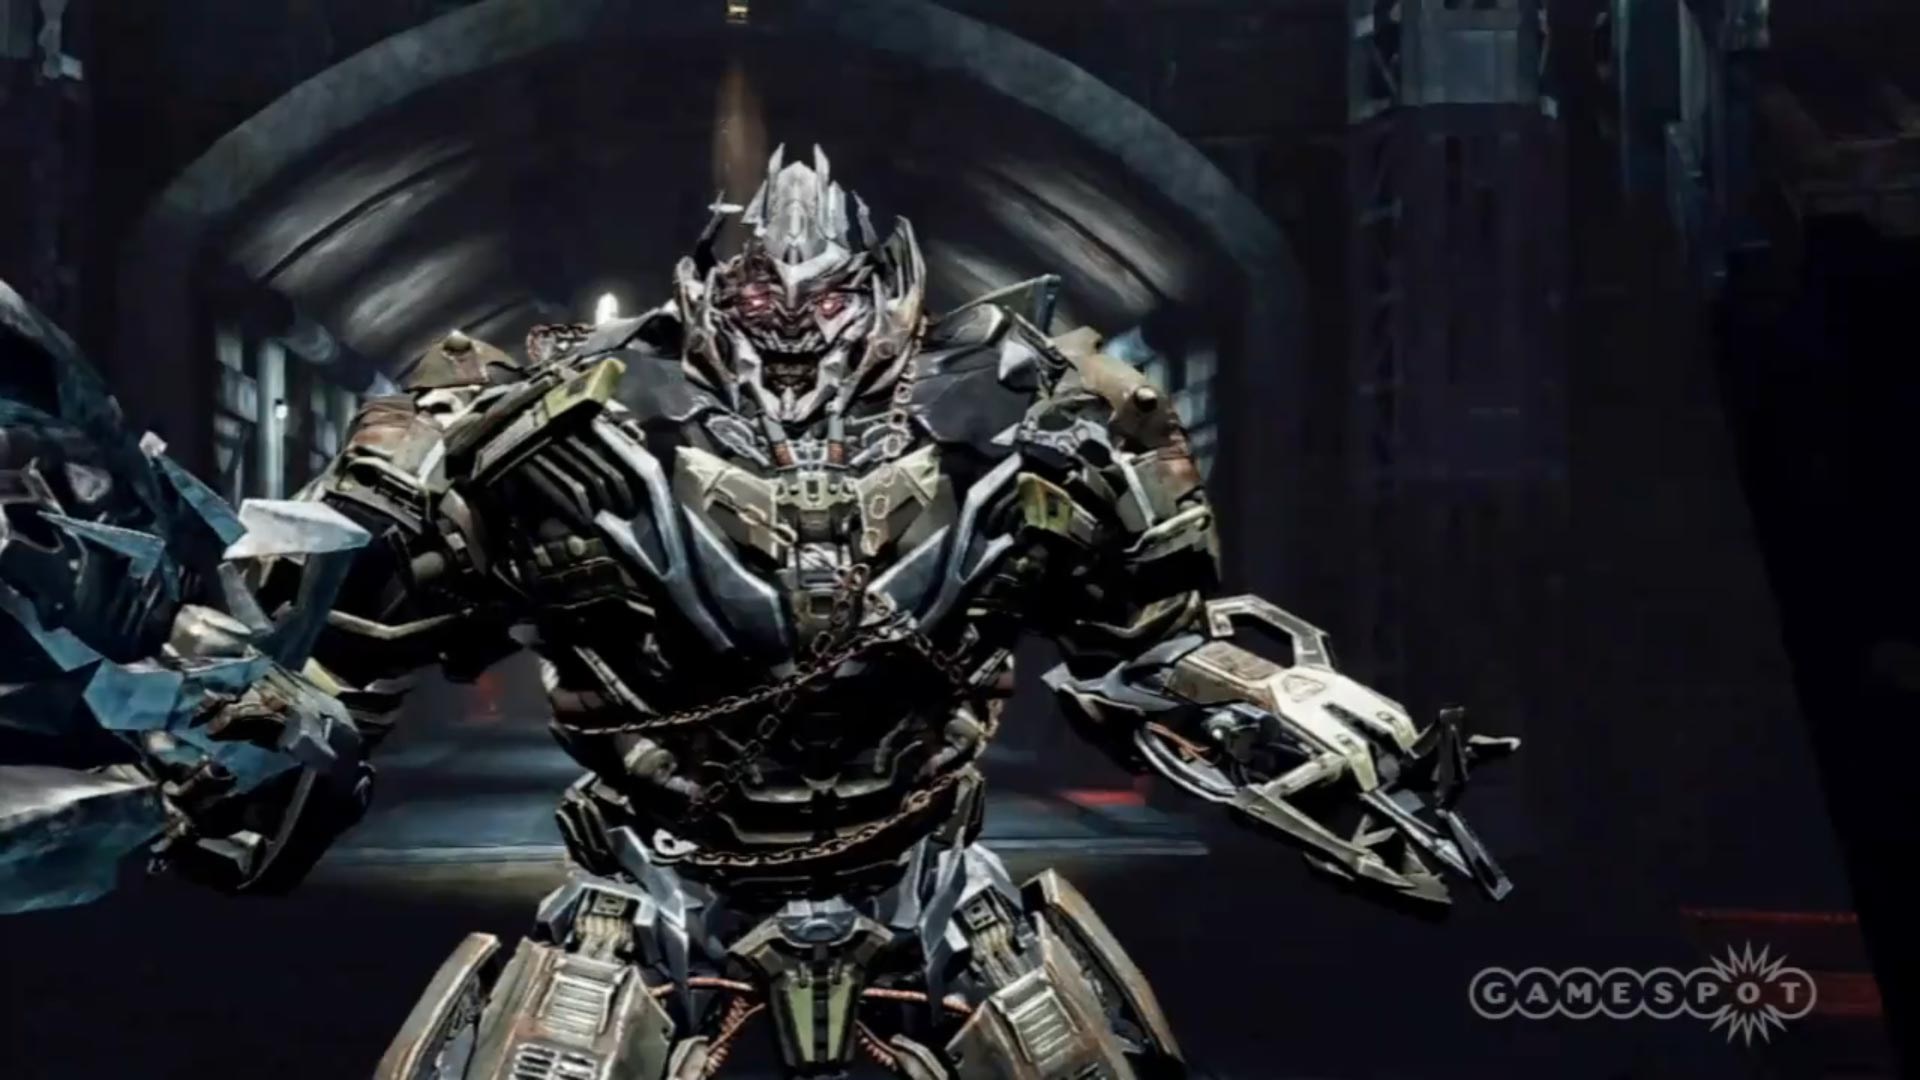 Fall Of Cybertron Wallpaper Hd New Transformers Dark Of The Moon Game Trailer Reveals